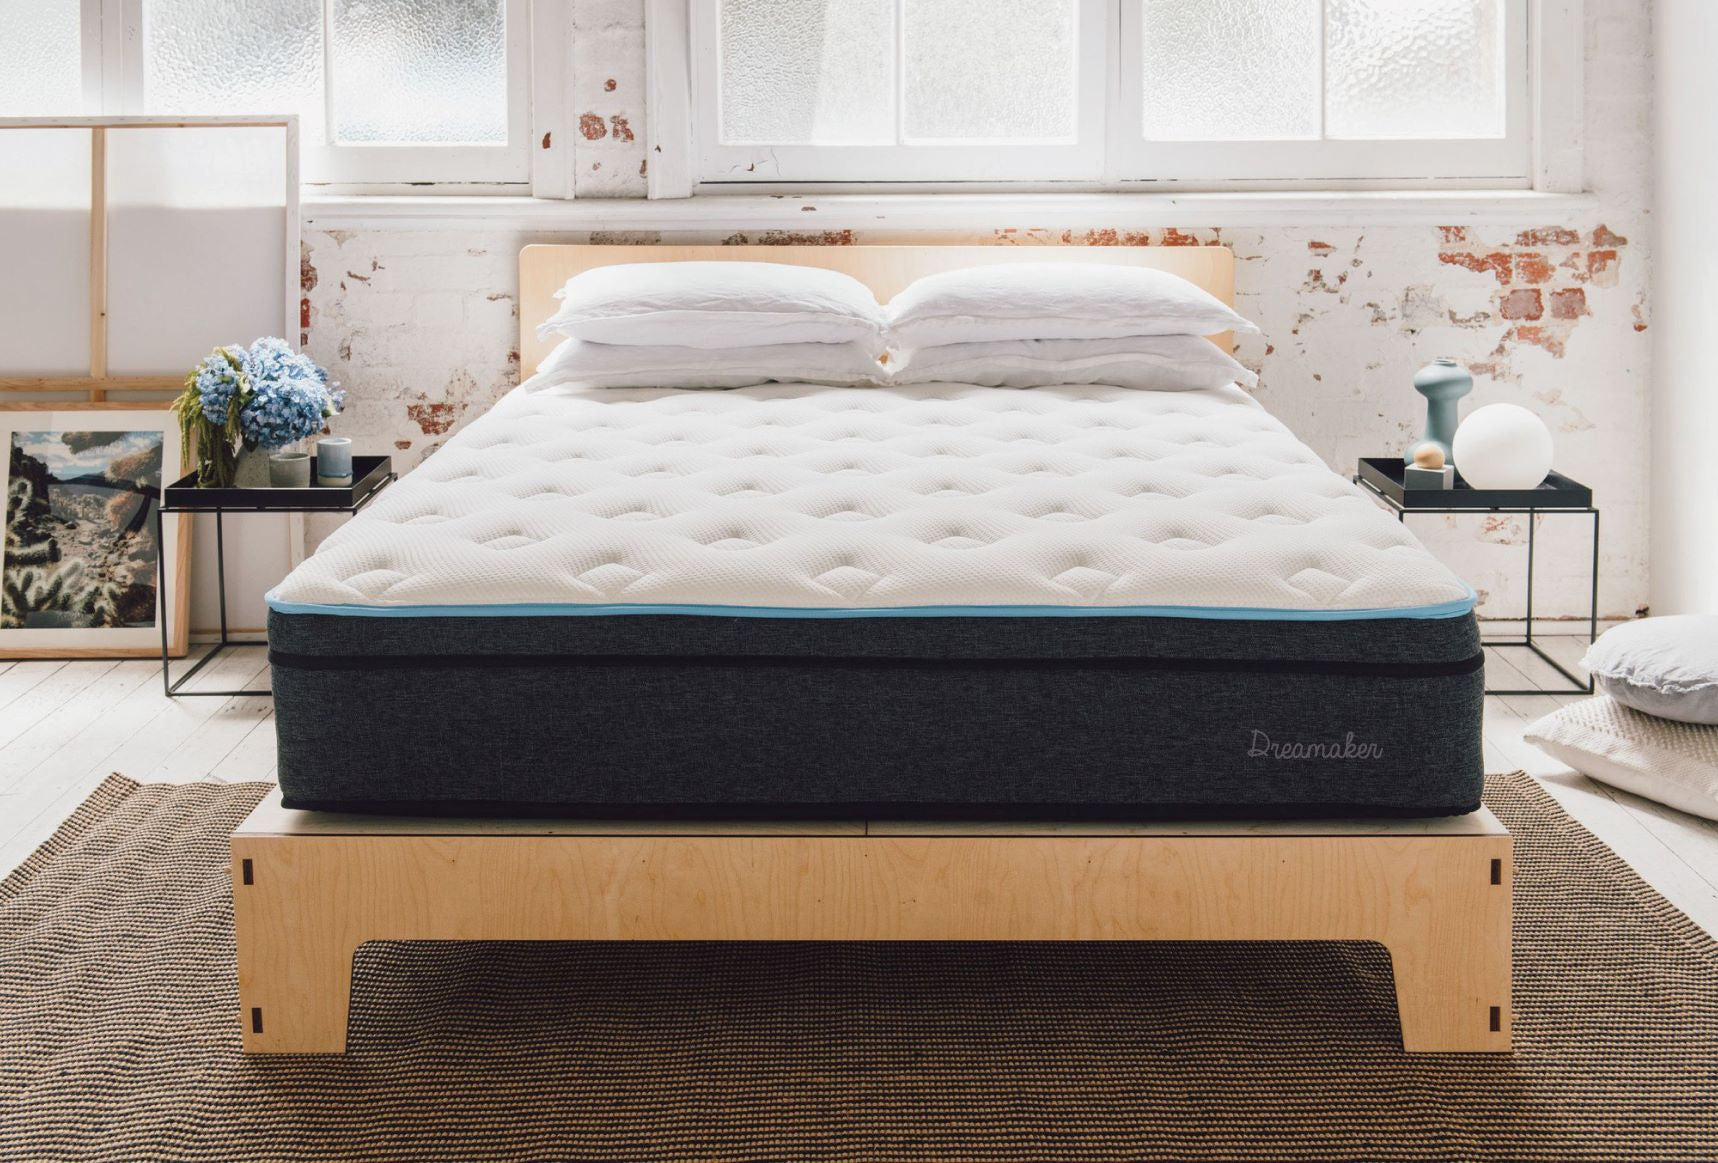 Cloud Comfort Mattress